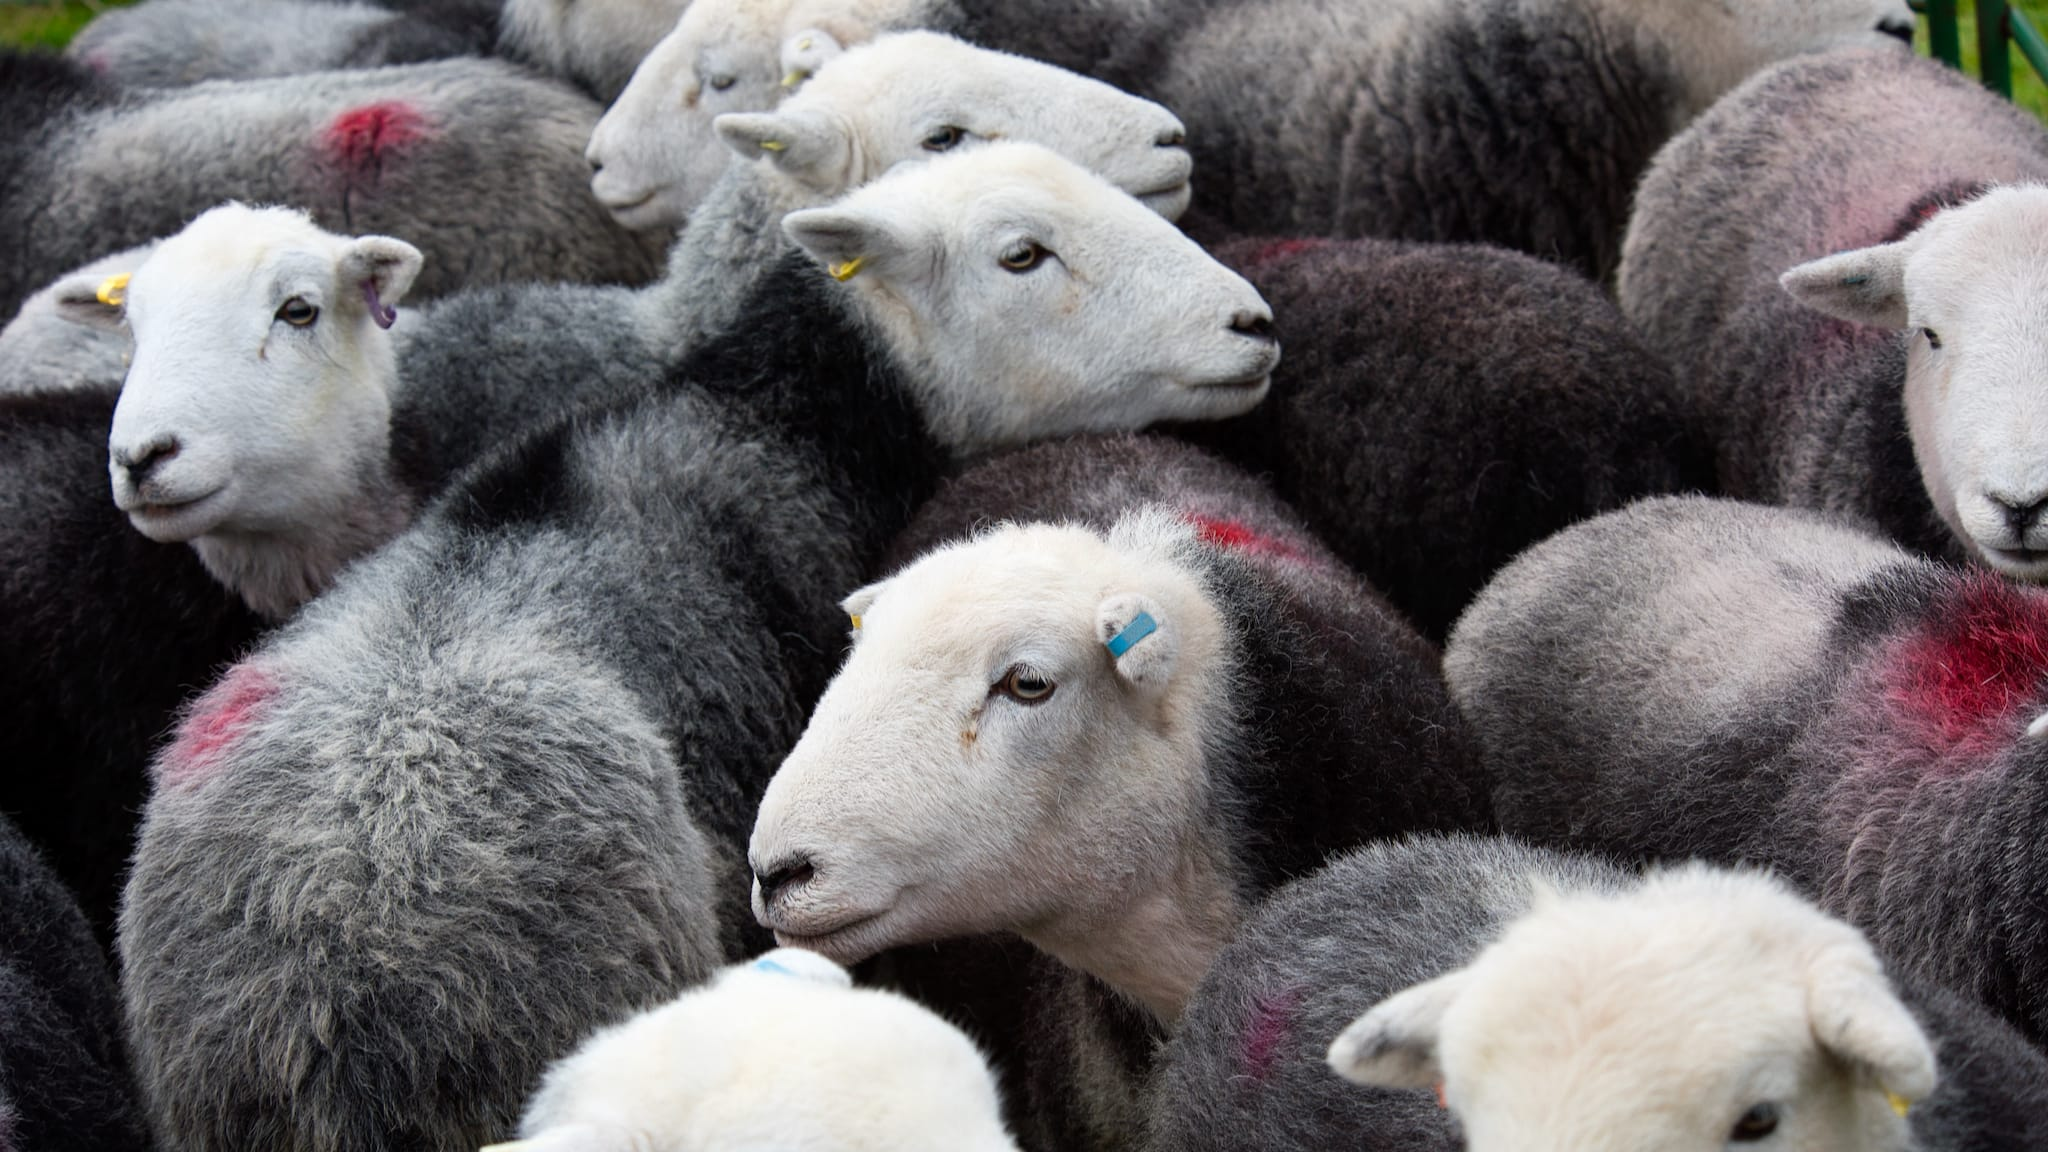 A flock of Herdwick sheep ewes all huddled together, with smit marks on them